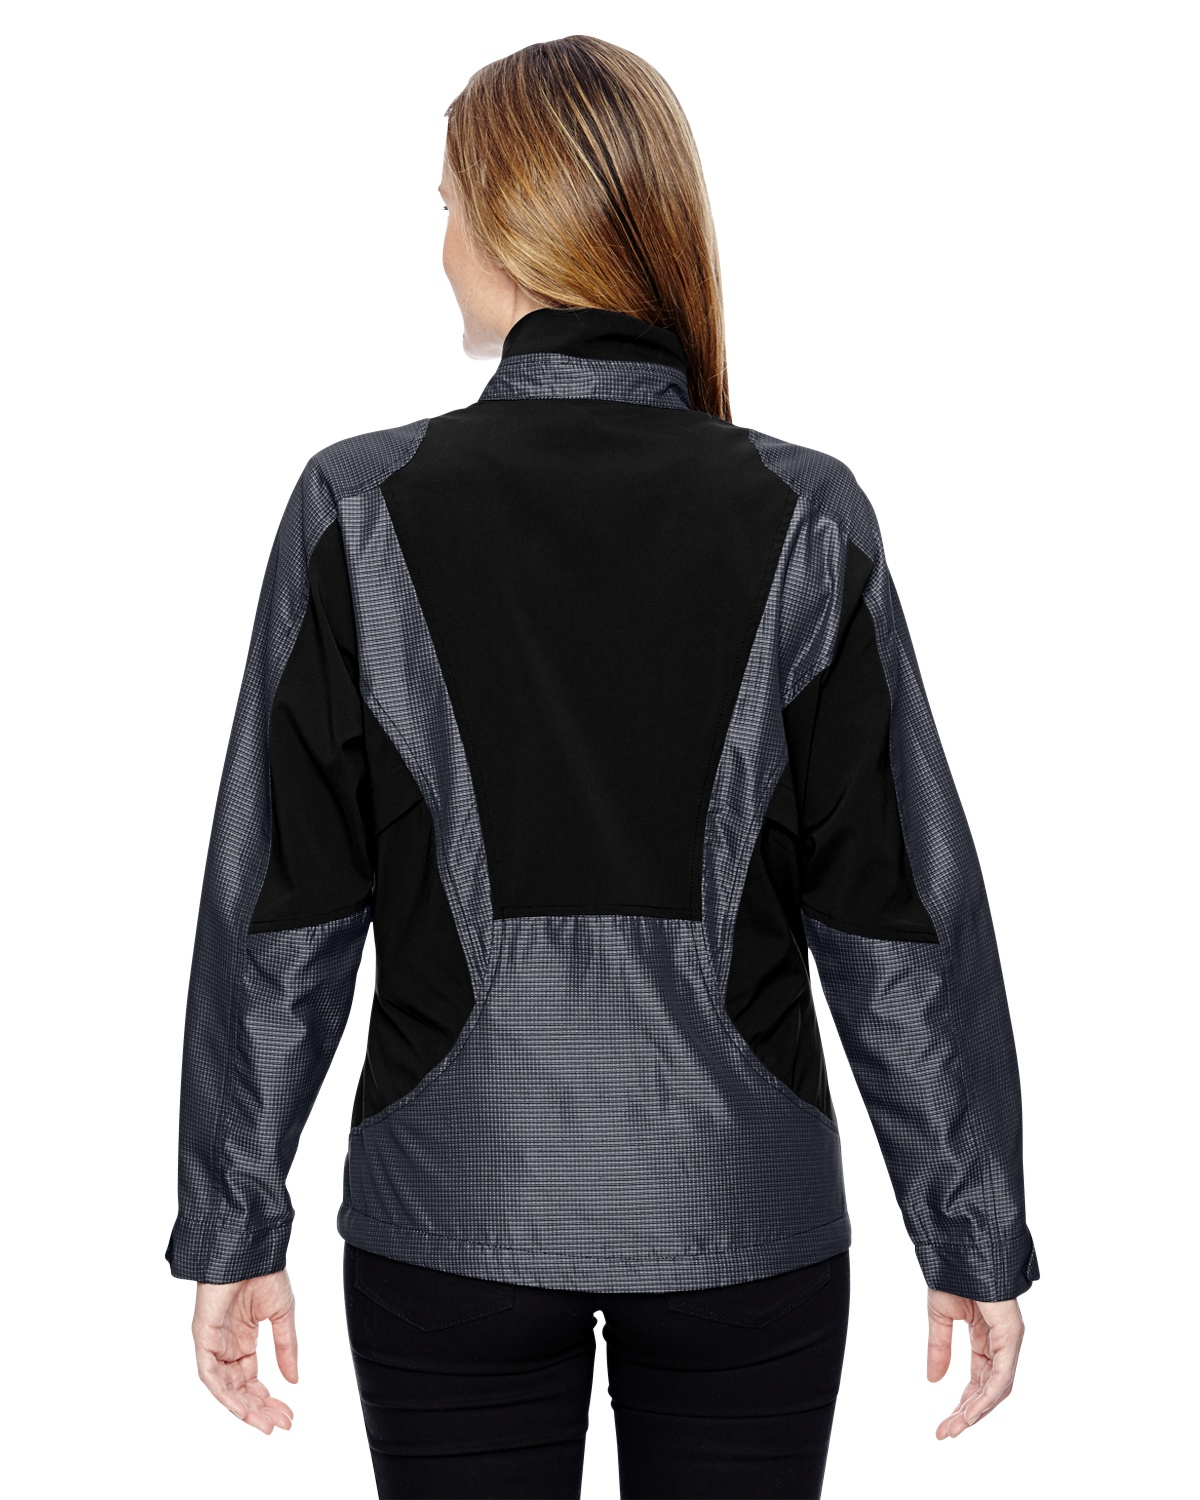 'Ash City - North End Sport Red 78807 Active Aero Two-Tone Lightweight Jacket'